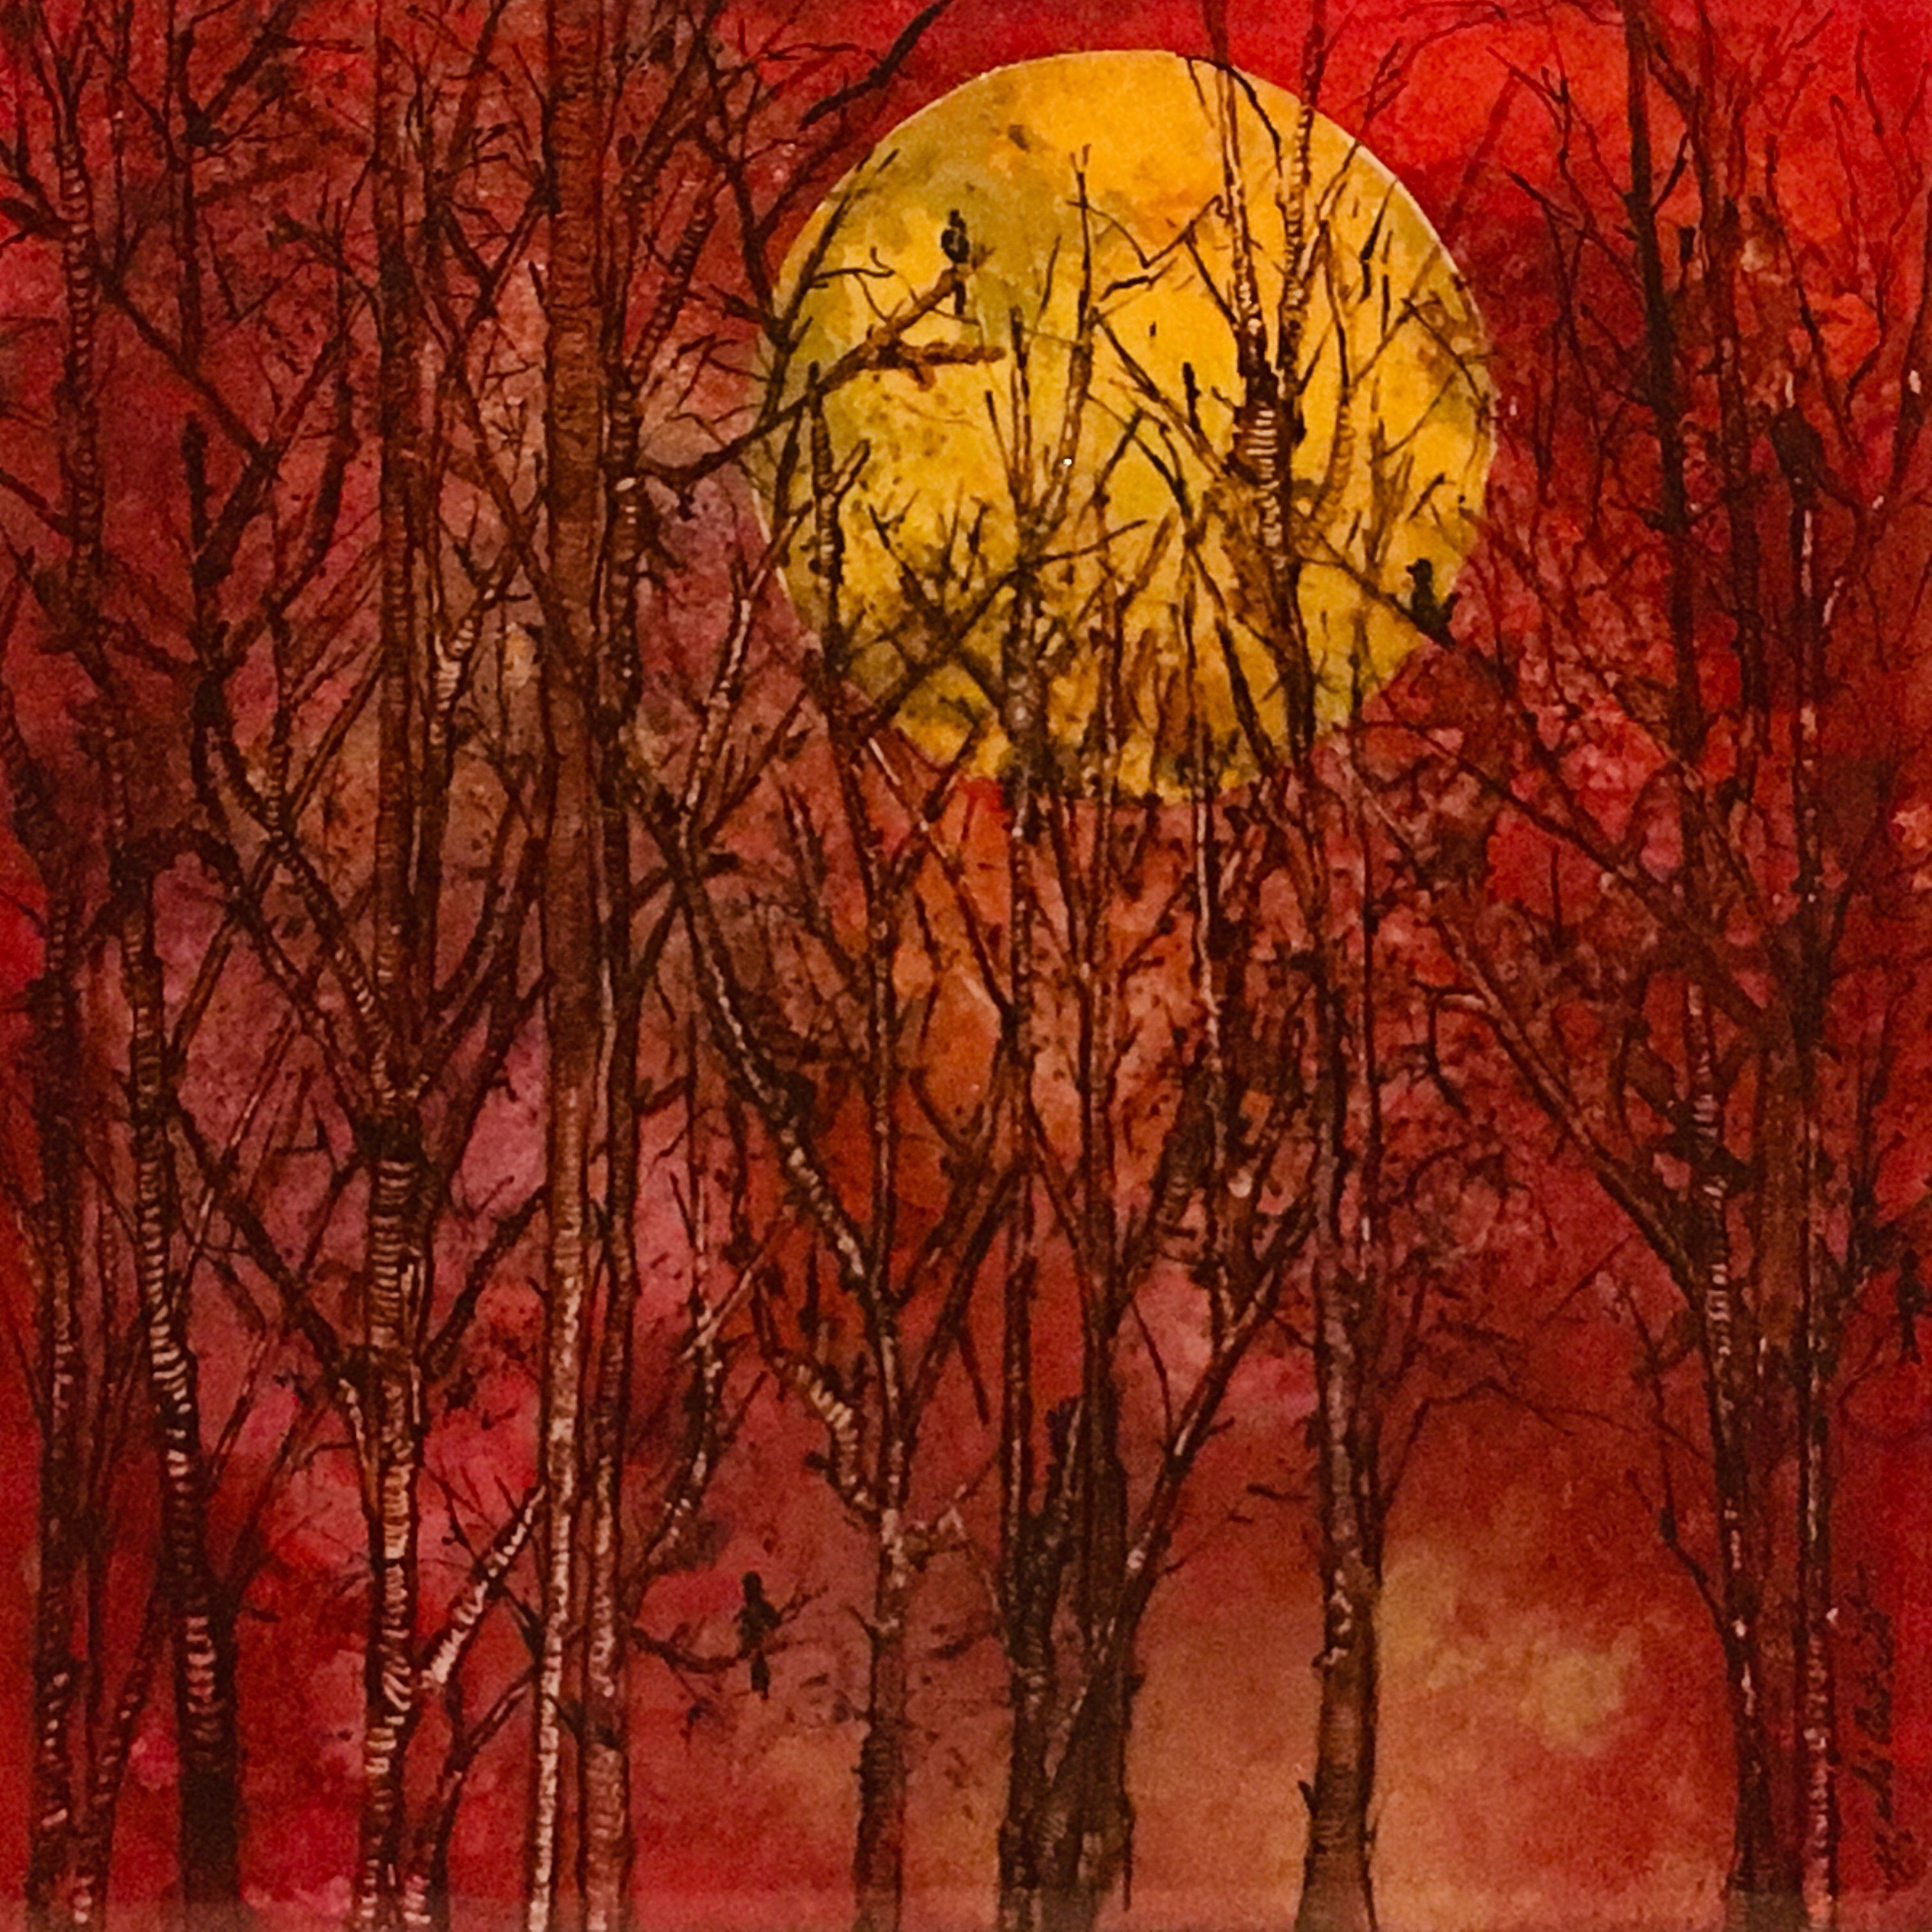 Forest Trees Painting Sunrise Tree Art Red Landscape Painting Alcohol Ink Tree Painting Alcohol Ink Painting Sunri Sunrise Painting Tree Painting Painting